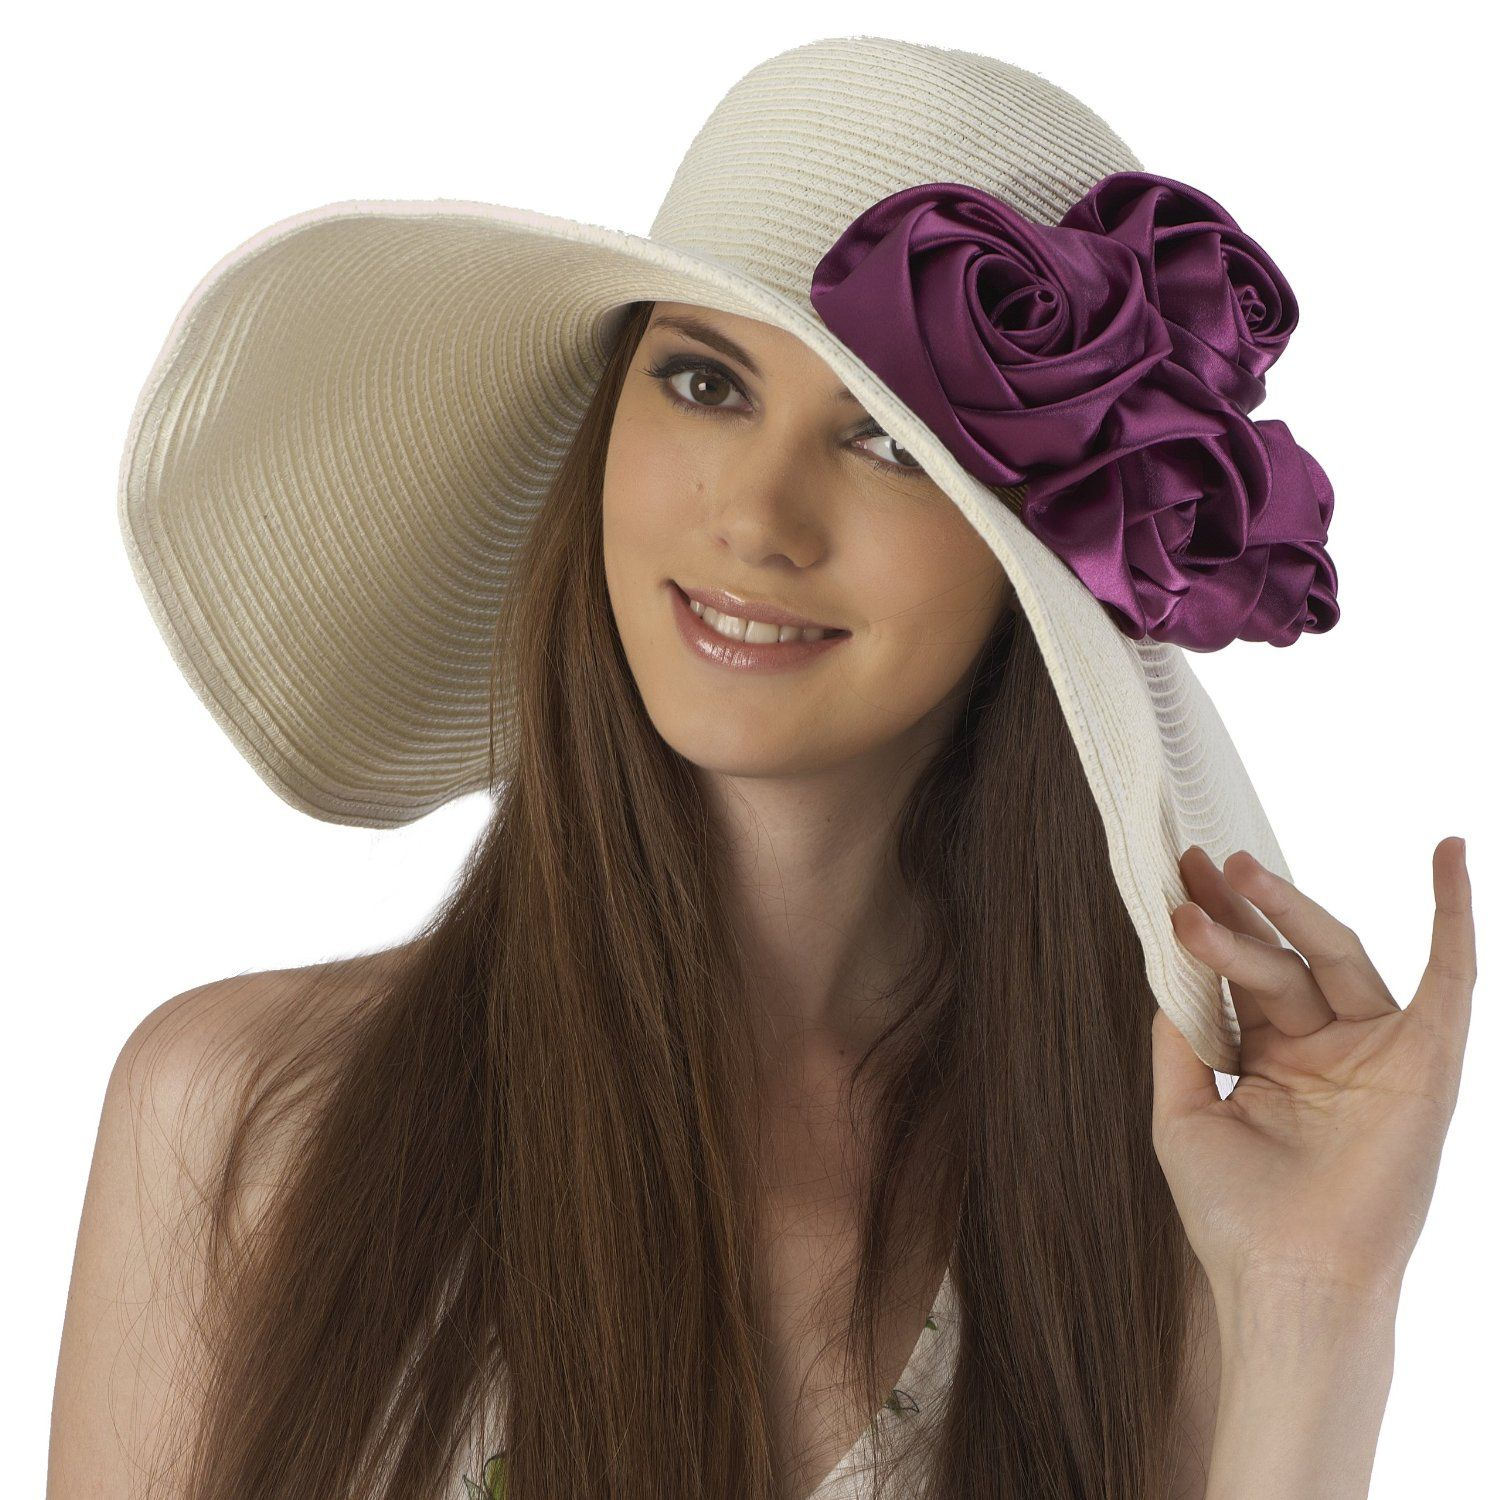 Ladies Spring Hats Ladies spring hats hats for